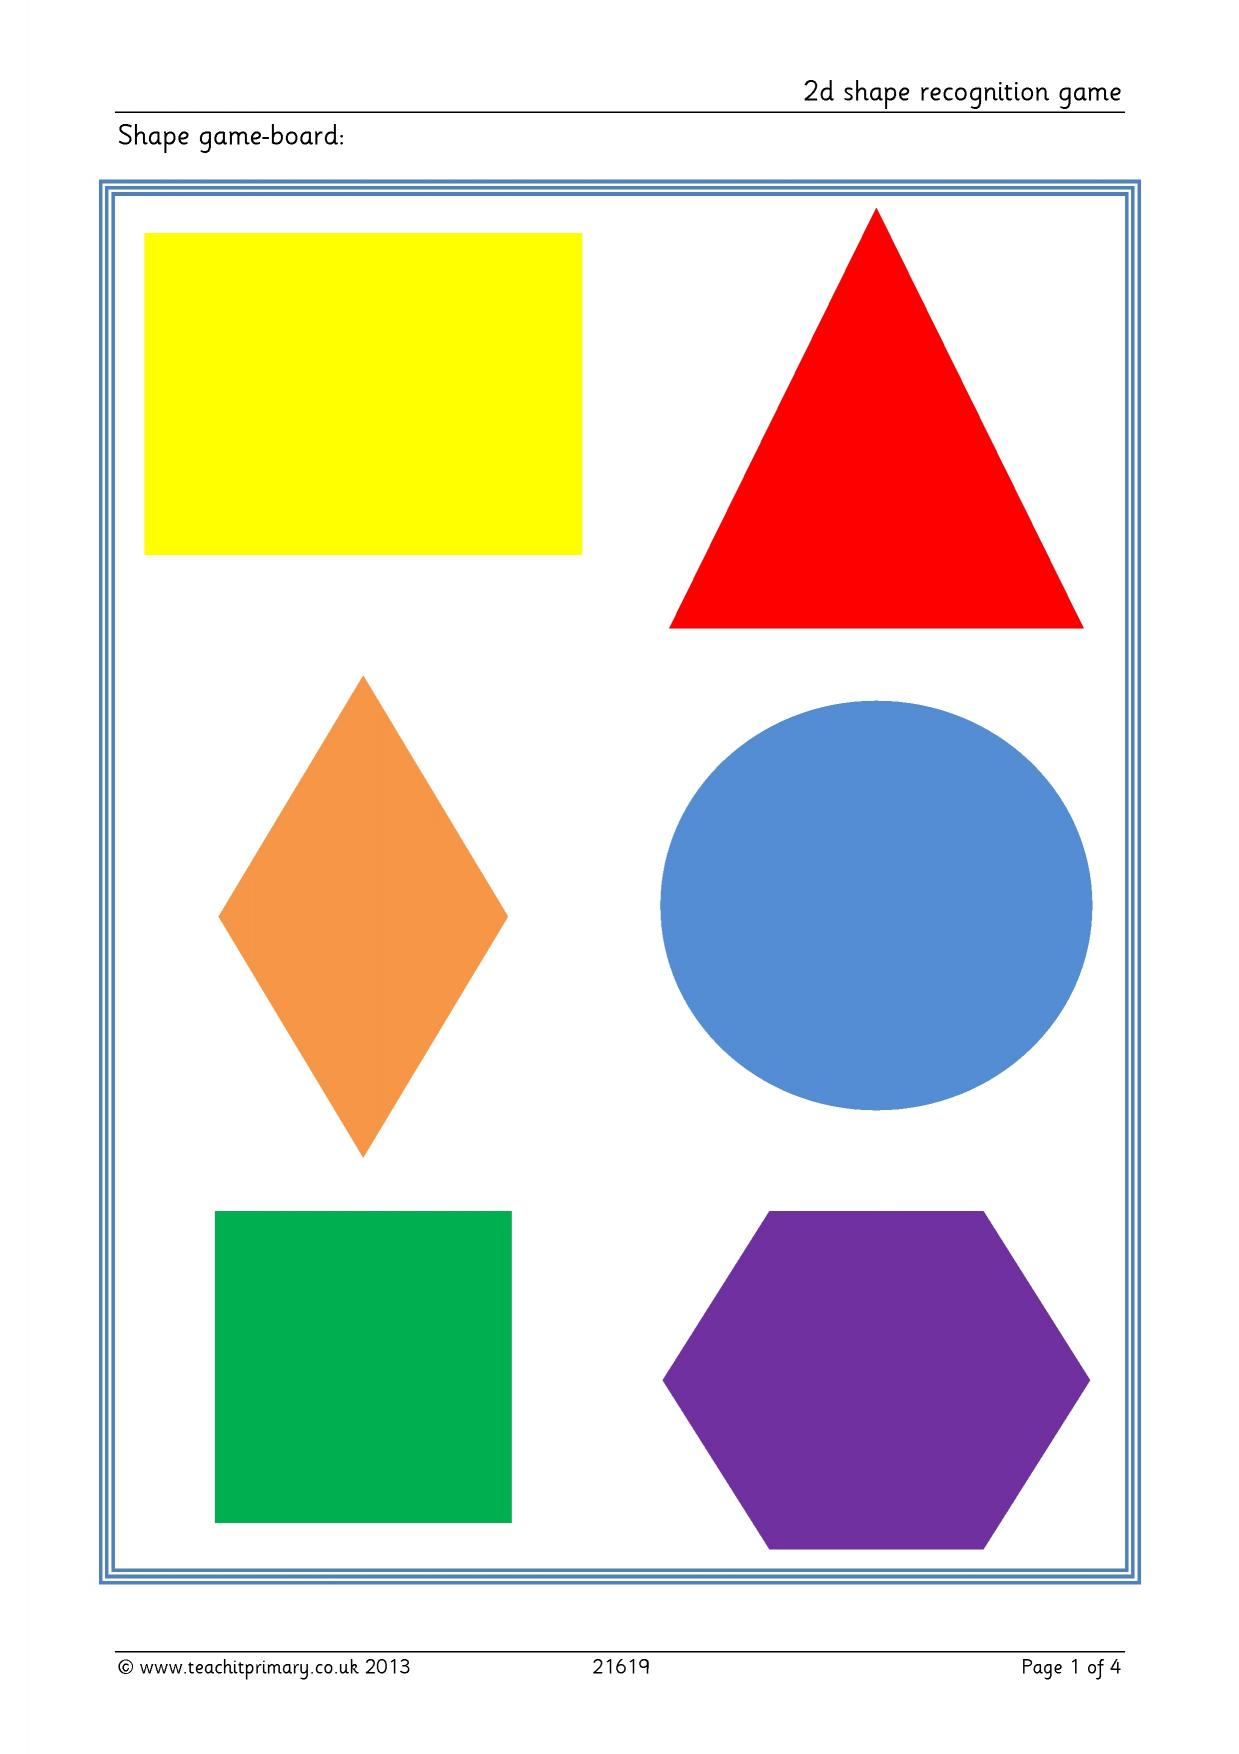 2d shape recognition game - Properties of shapes u2013 recognizing, naming and describing - Geometry ...